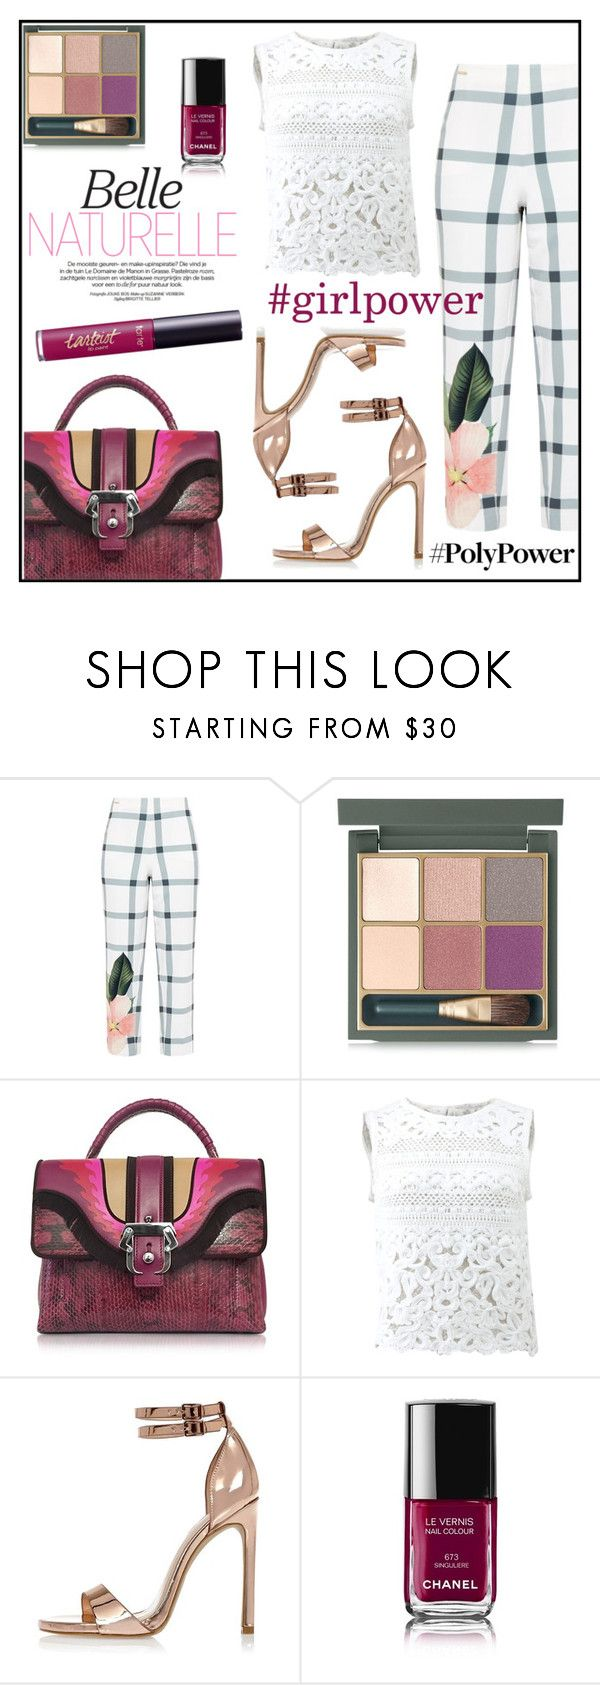 """Empowered"" by anchilly23 ❤ liked on Polyvore featuring Ted Baker, MAC Cosmetics, Paula Cademartori, Ermanno Scervino, River Island, Chanel and tarte"